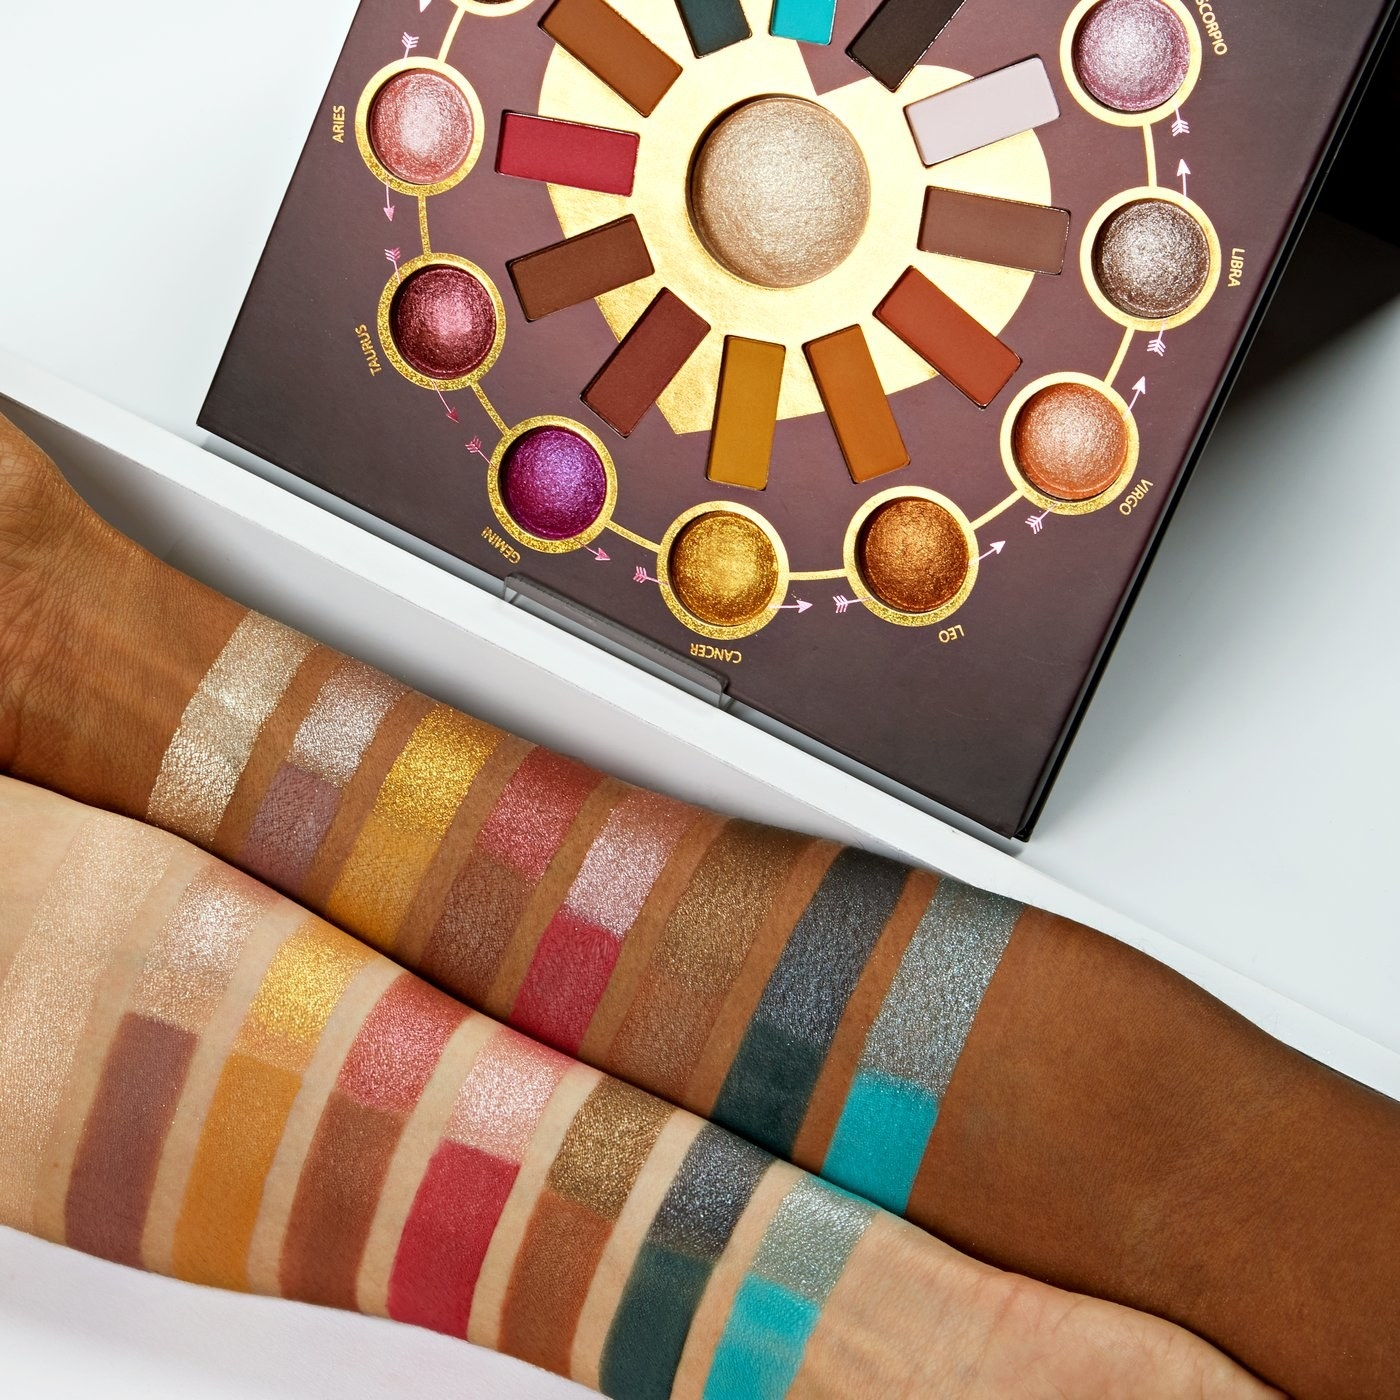 Two arms covered in eyeshadow swatches display the colors. The palette pans are arranged in a circle with the highlighter in the middle